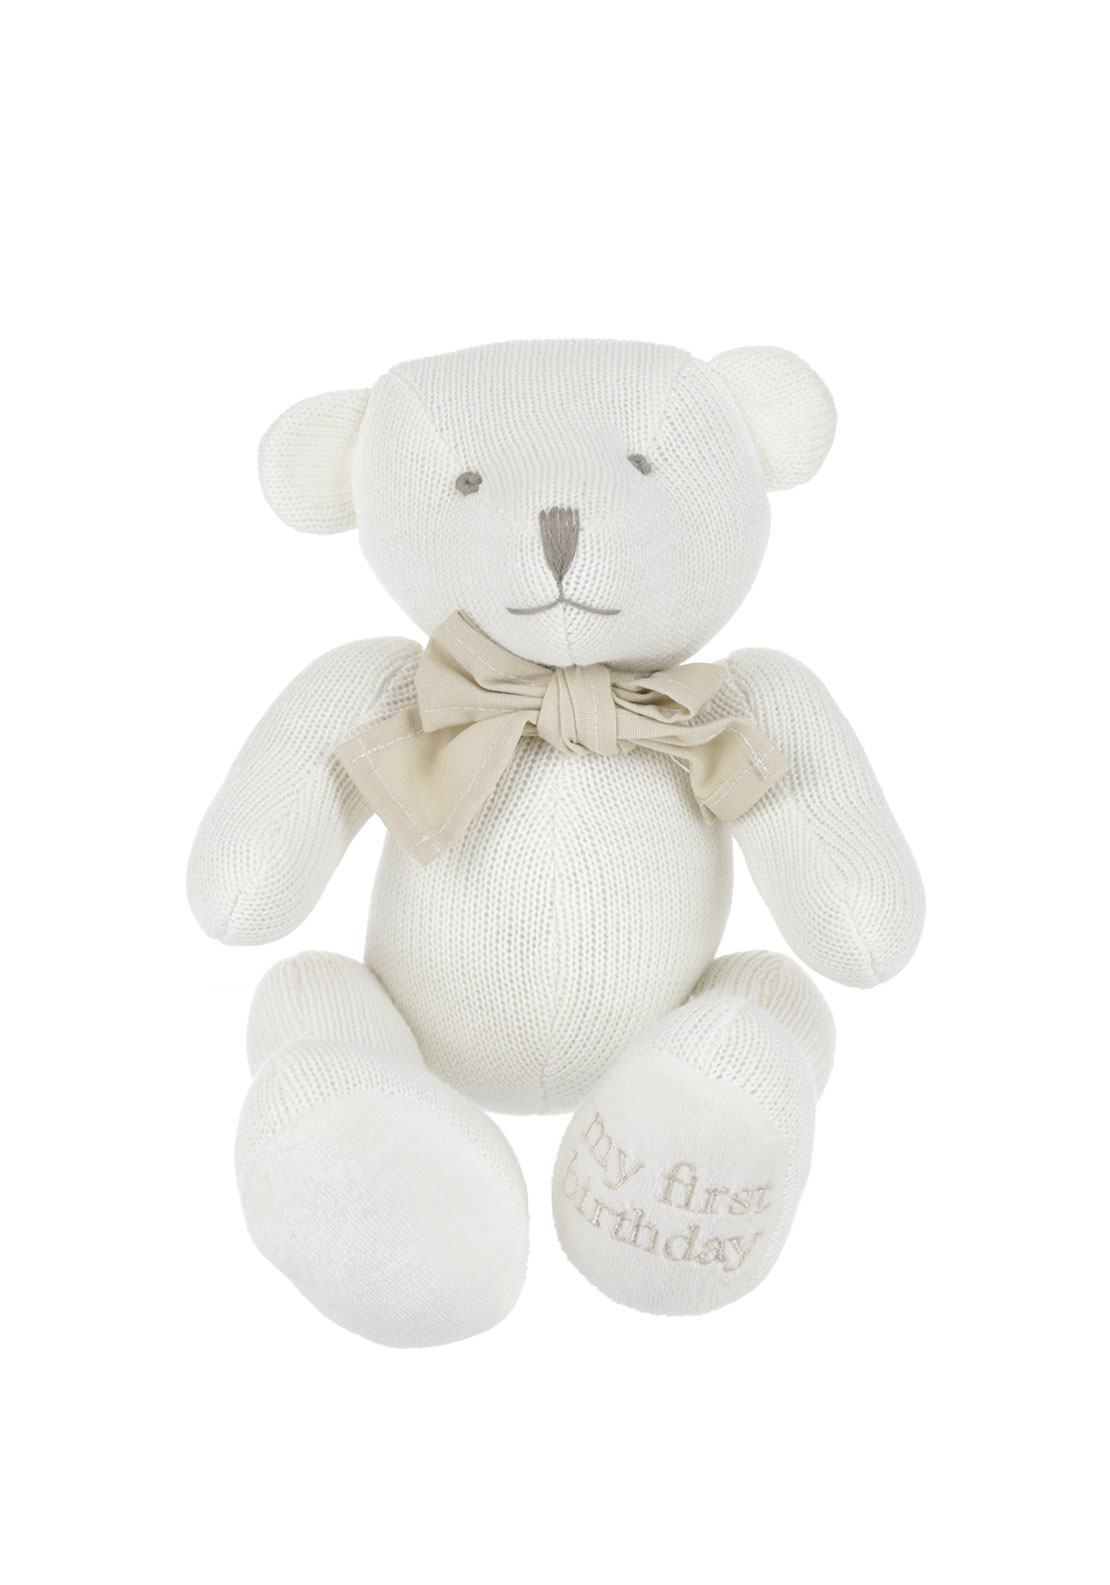 Juliana Bambino Knitted Cotton Bear, White